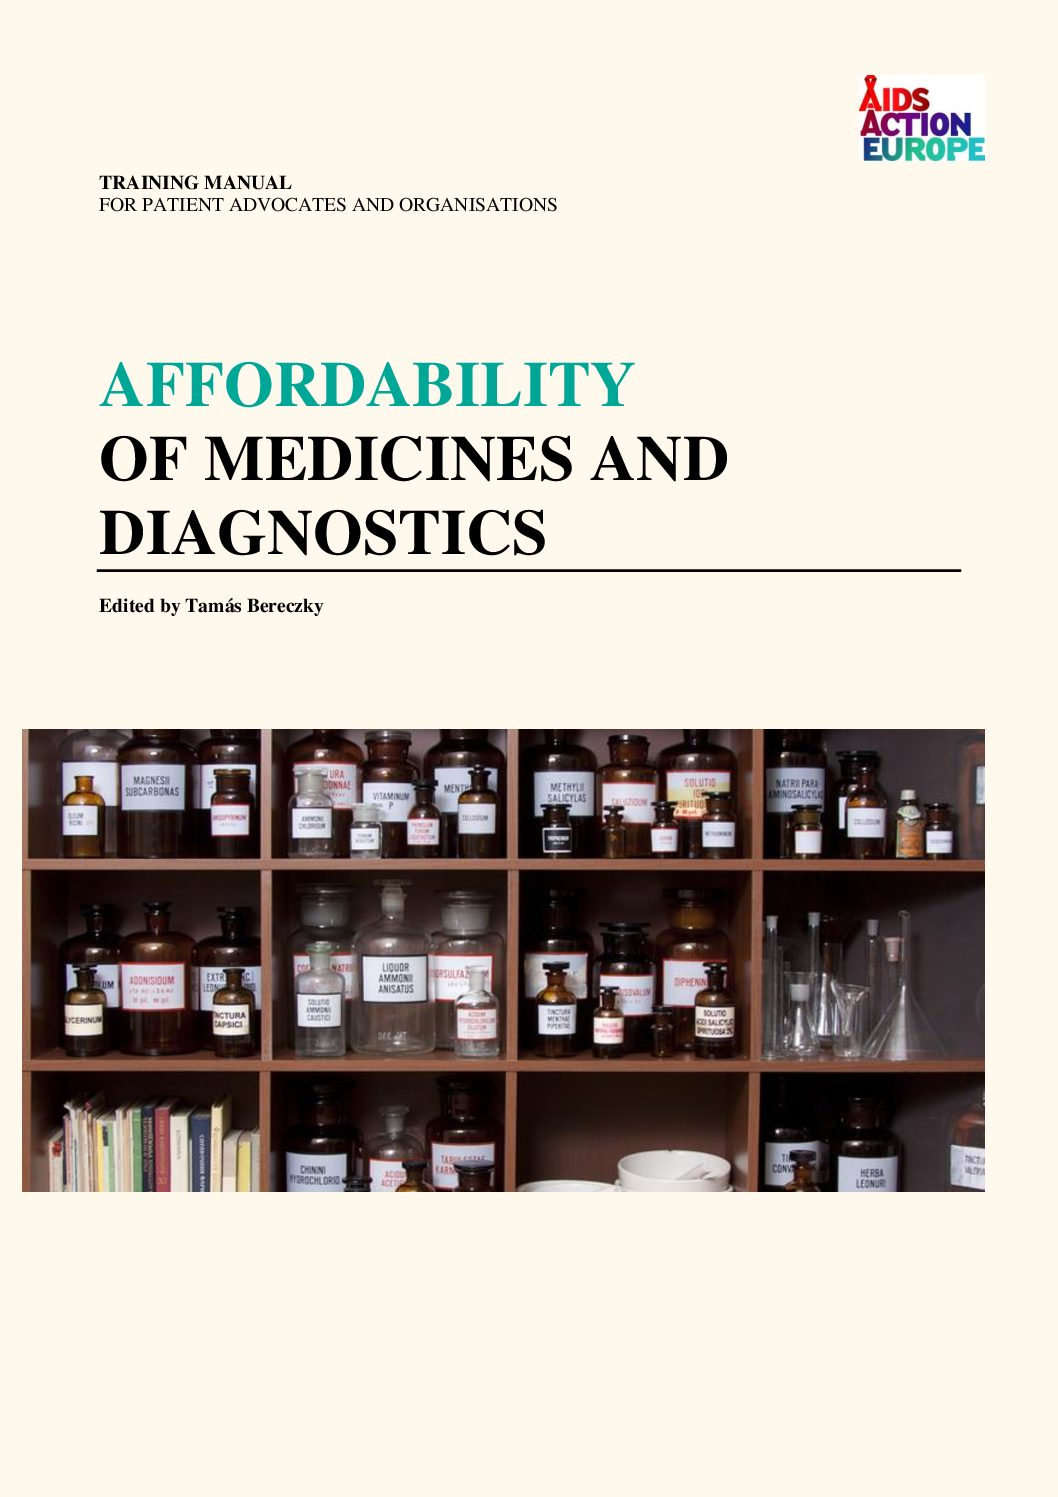 Training  manual for patient advocates and organisations affordability of medicines and diagnostics